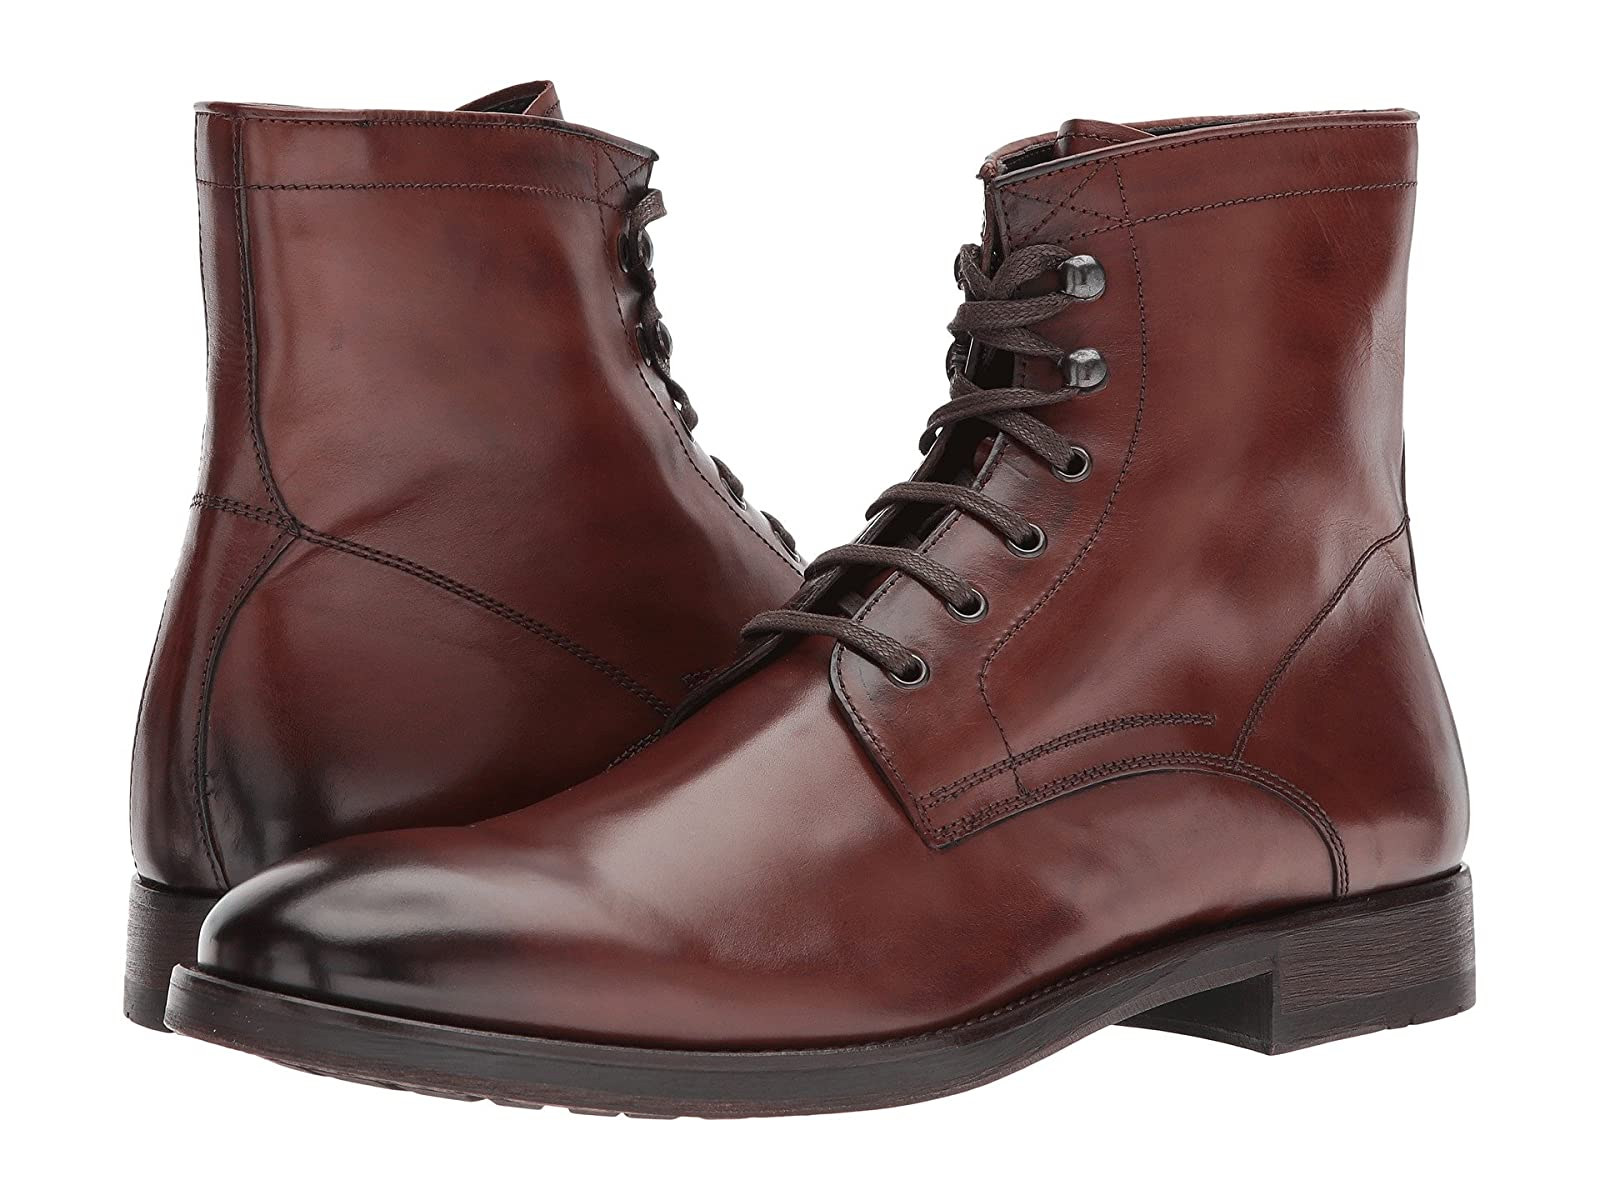 To Boot New York AstoriaEconomical and quality shoes